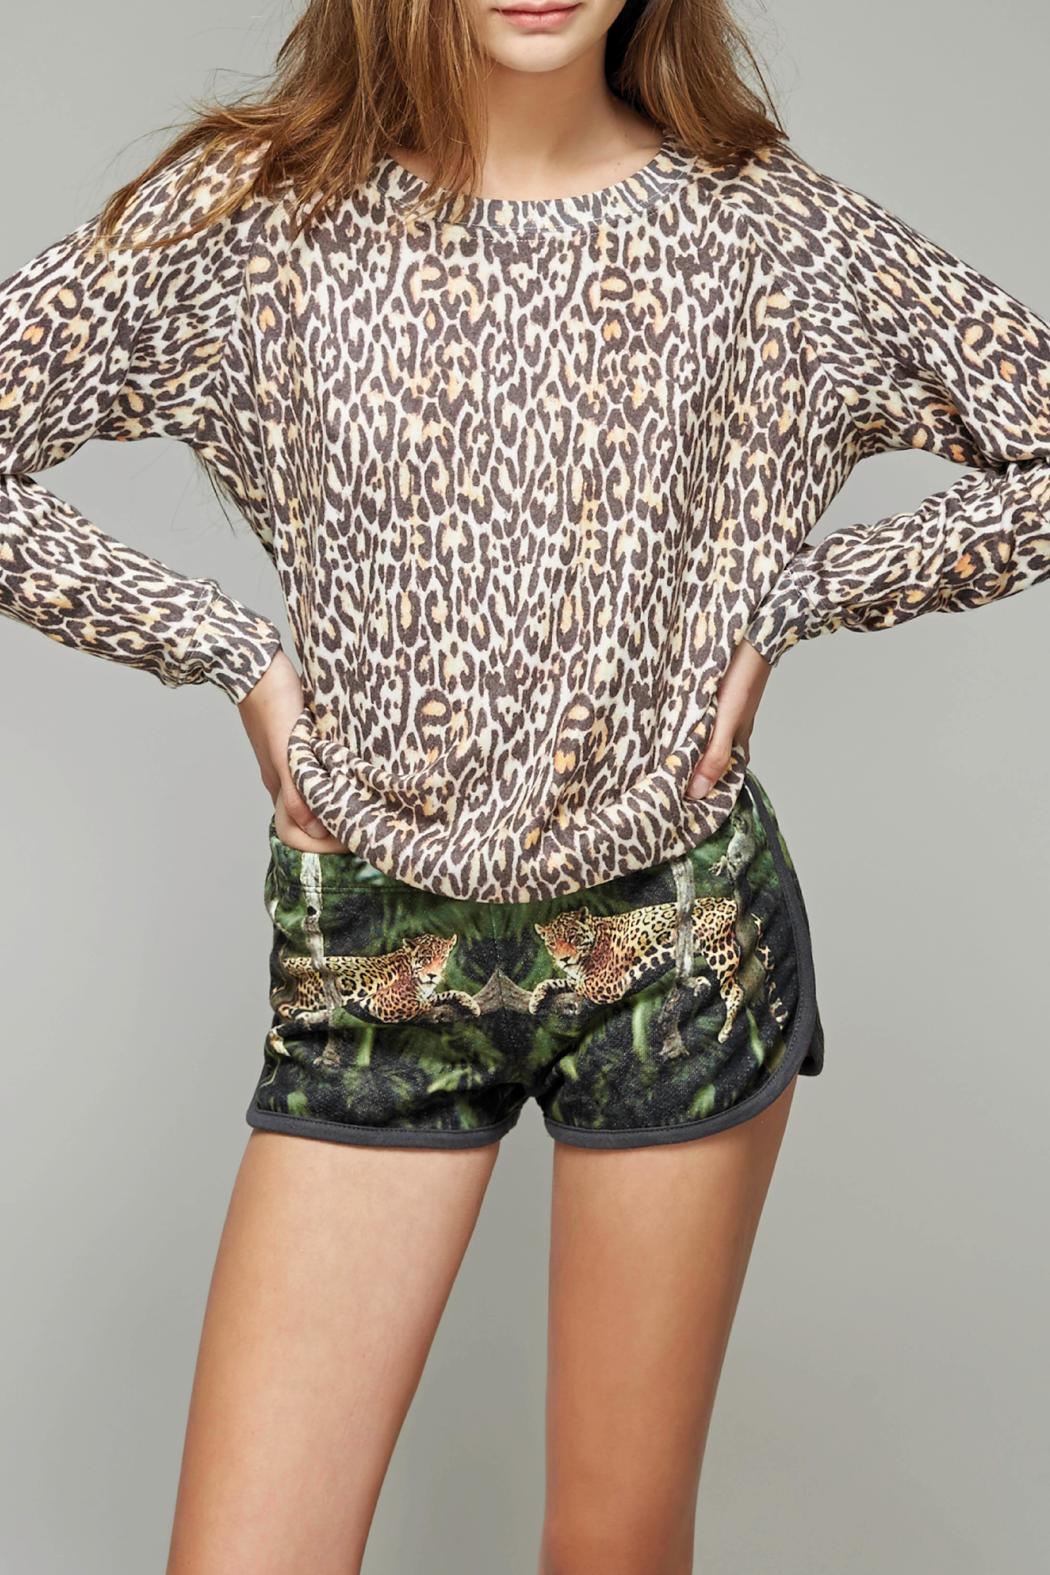 All Things Fabulous Cheetah Print Cozy Sweater - Back Cropped Image